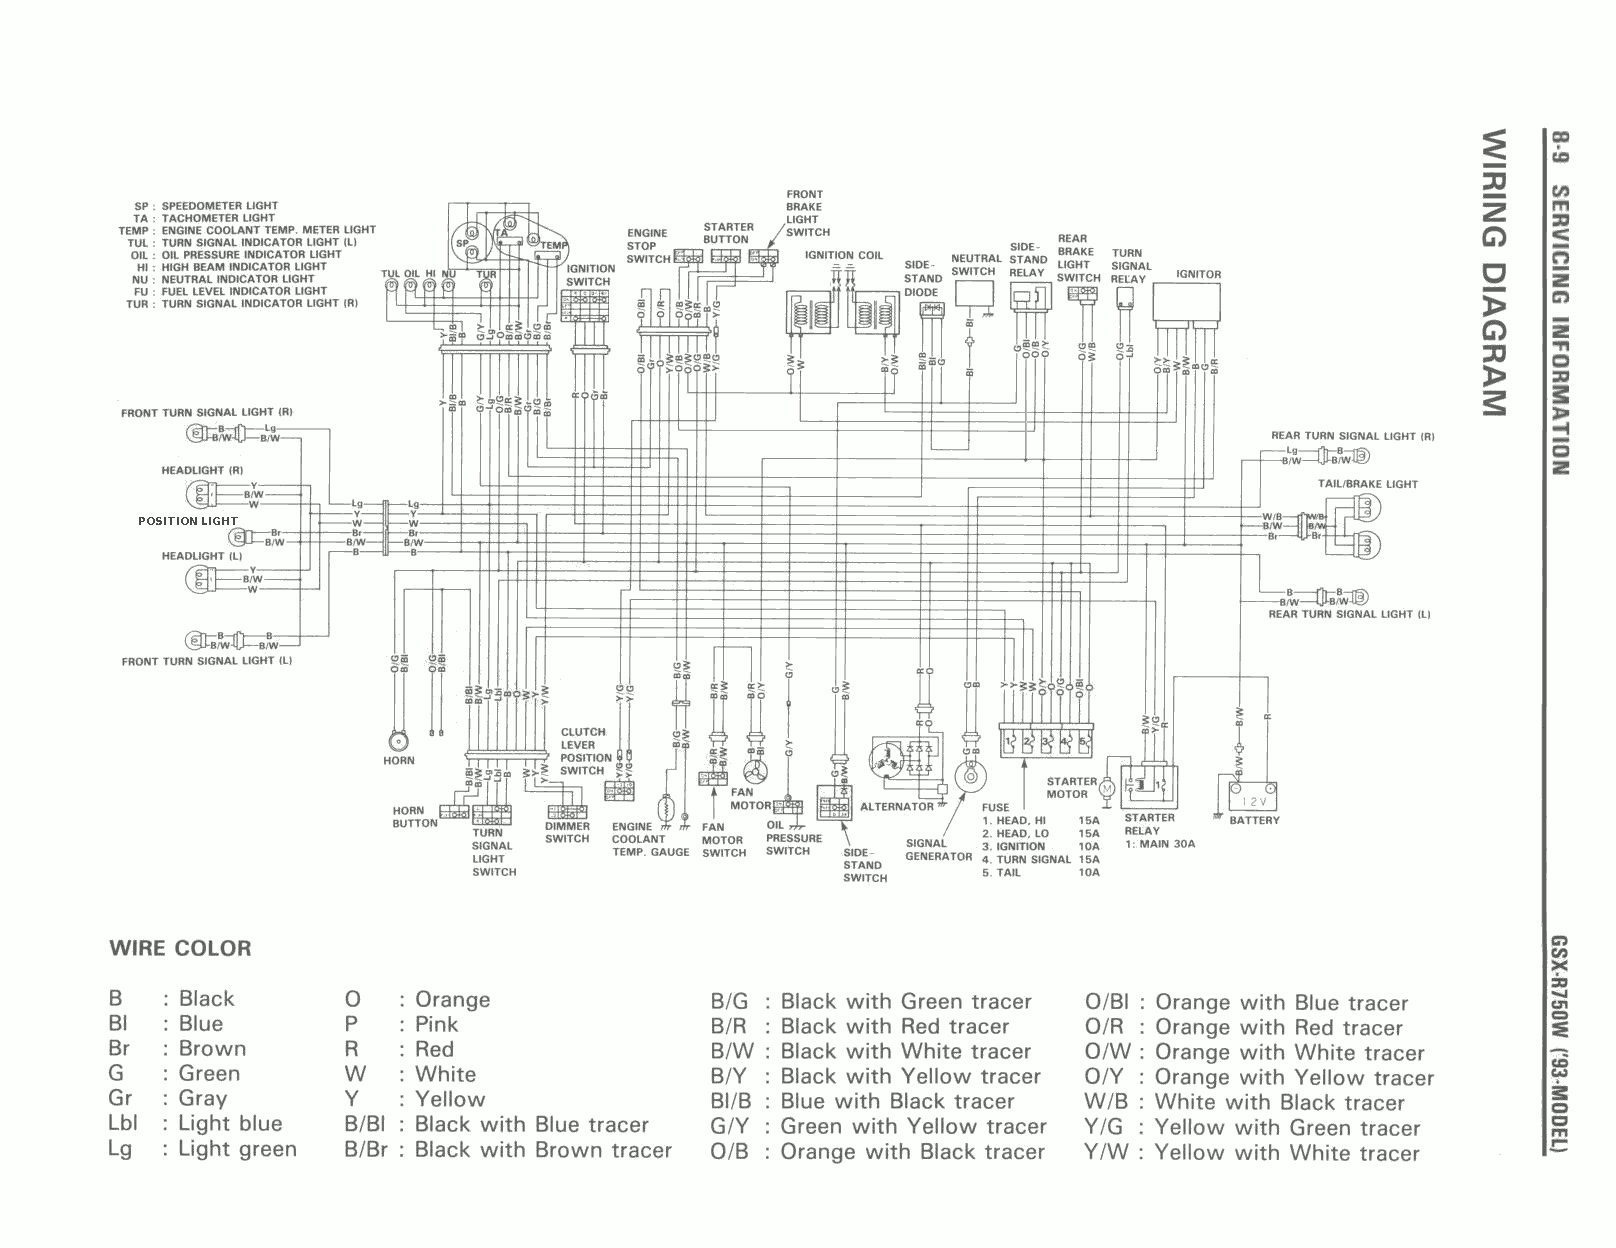 WRG-7488] 1993 Xr650l Wiring Diagram on